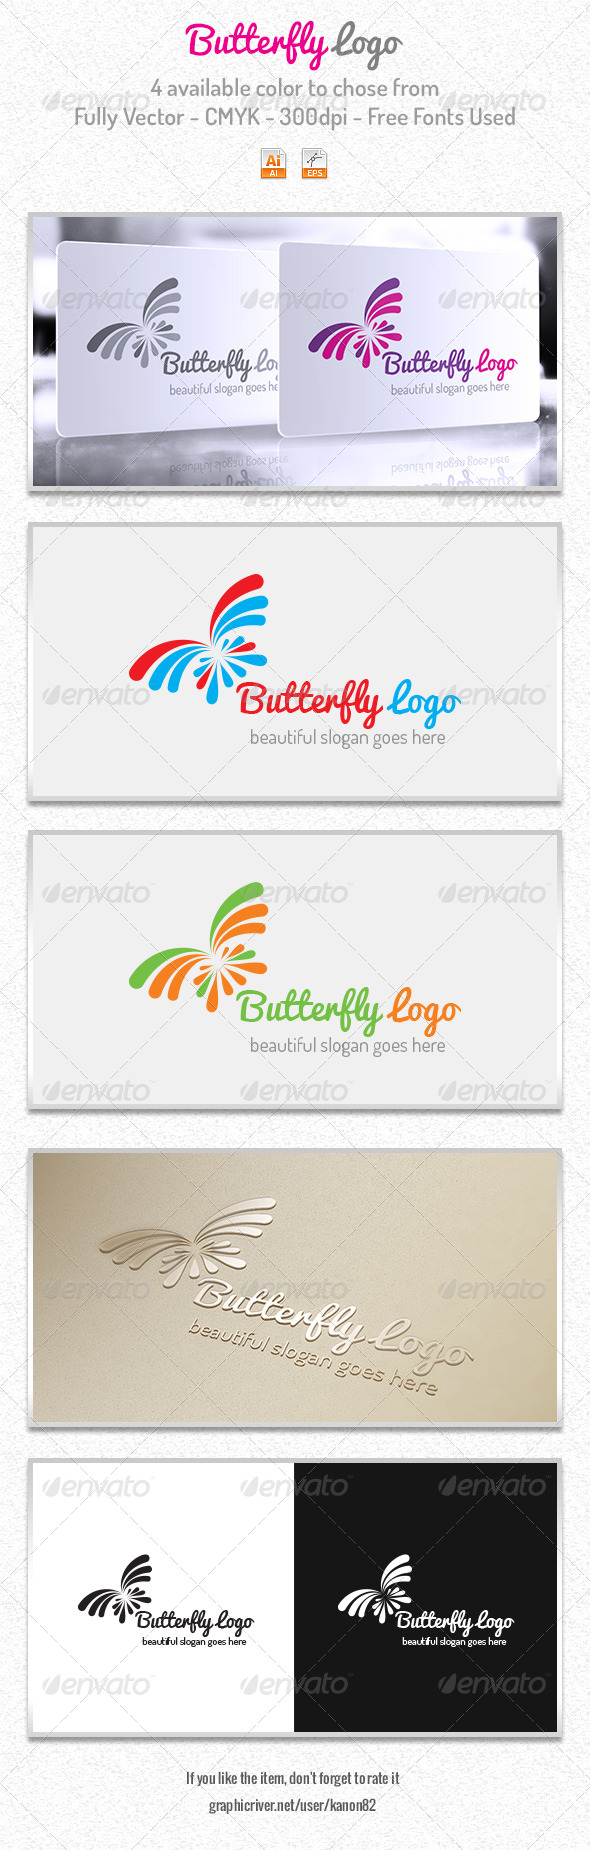 GraphicRiver Butterfly Logo 5982257